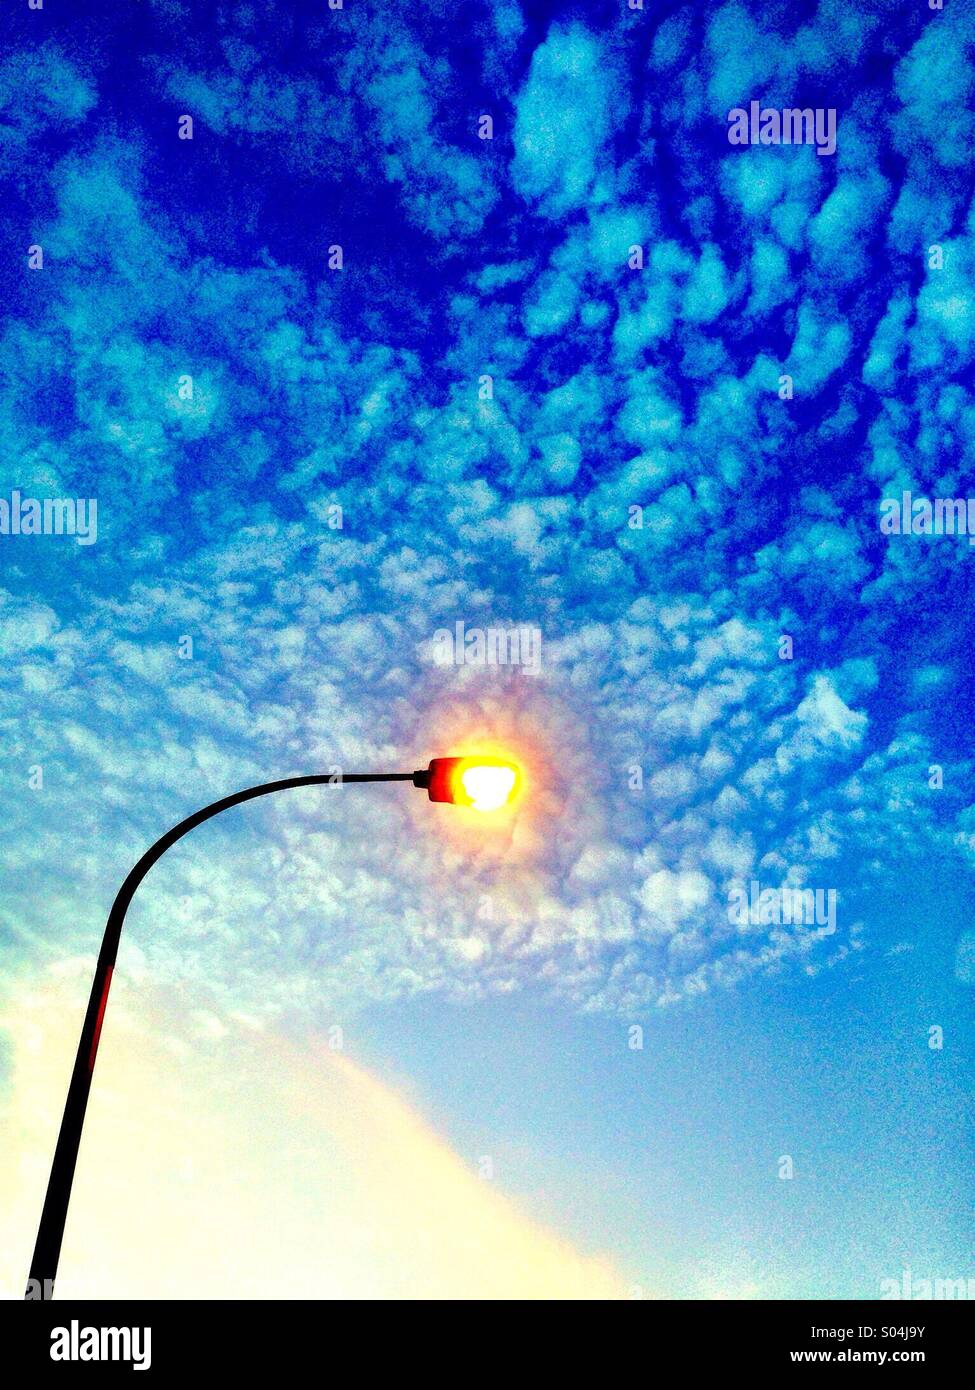 Lamppost in front of cloudy sky - Stock Image